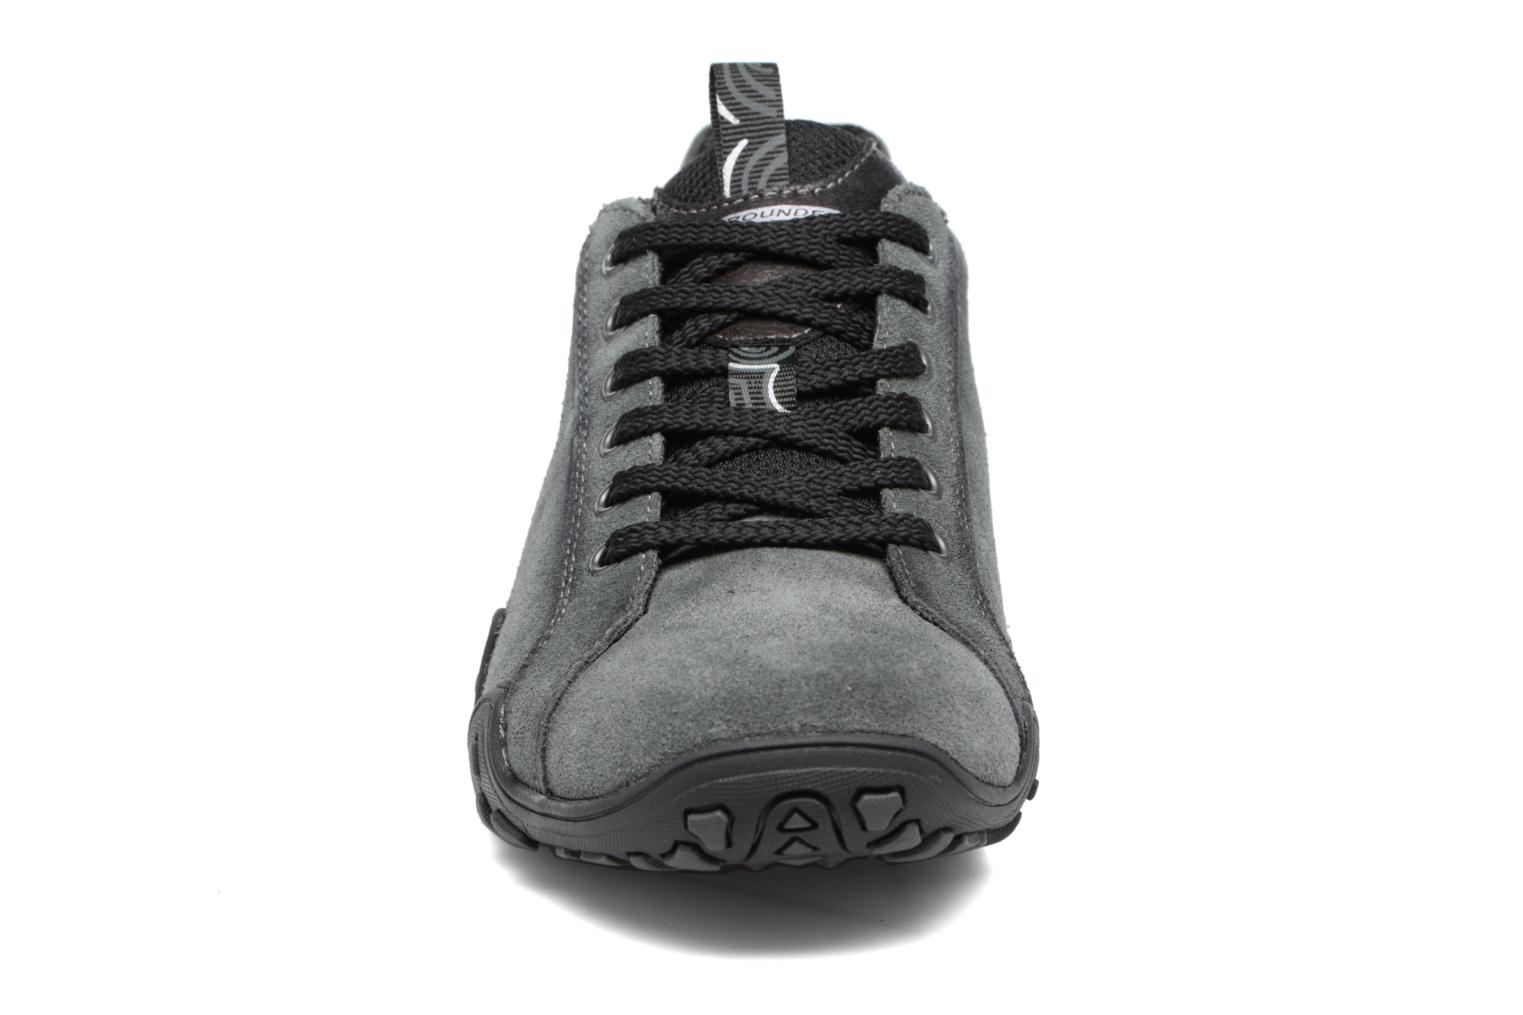 Chaussures de sport Allrounder by Mephisto Funny Gris vue portées chaussures